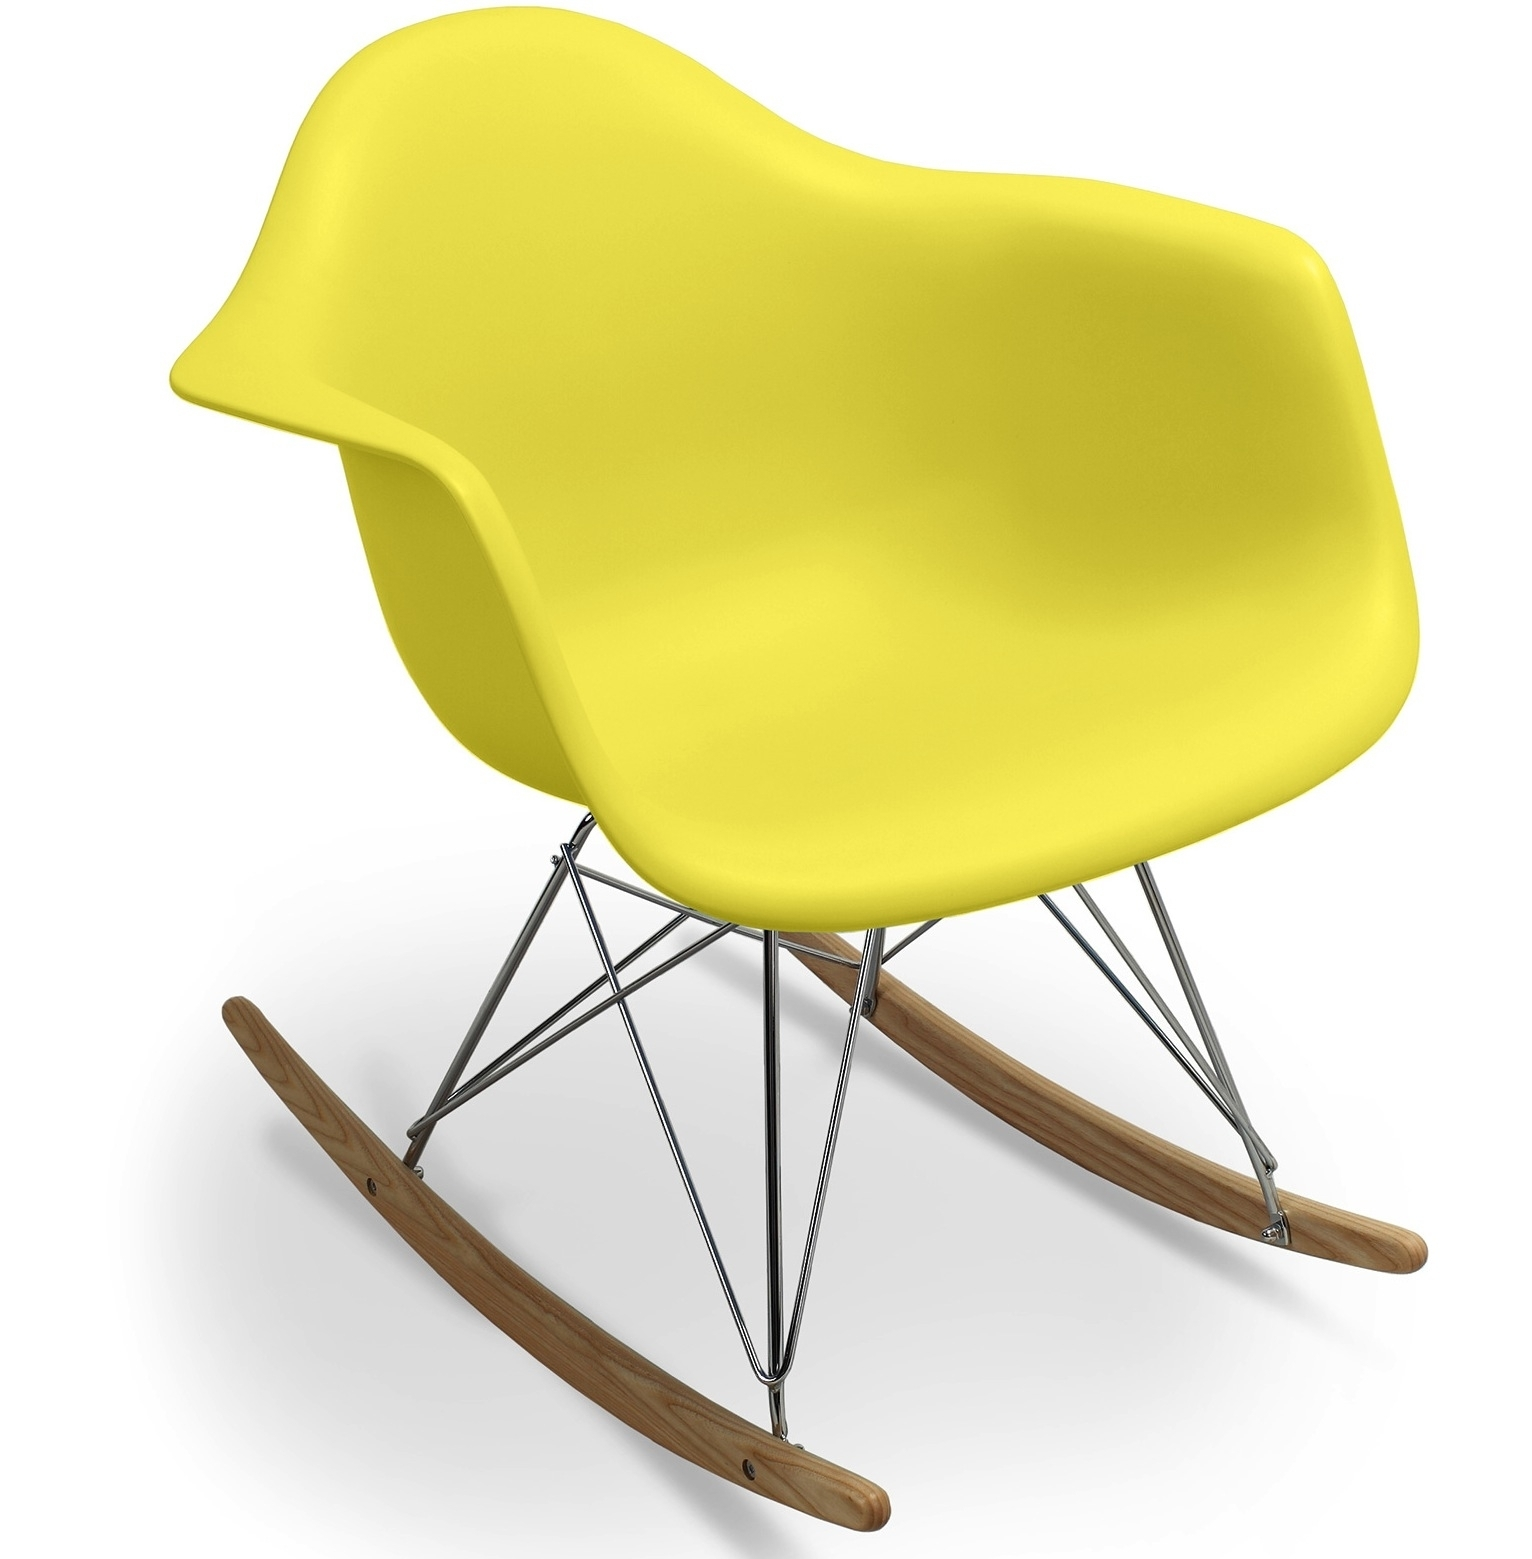 fauteuil bascule jaune mat inspir charles eames. Black Bedroom Furniture Sets. Home Design Ideas